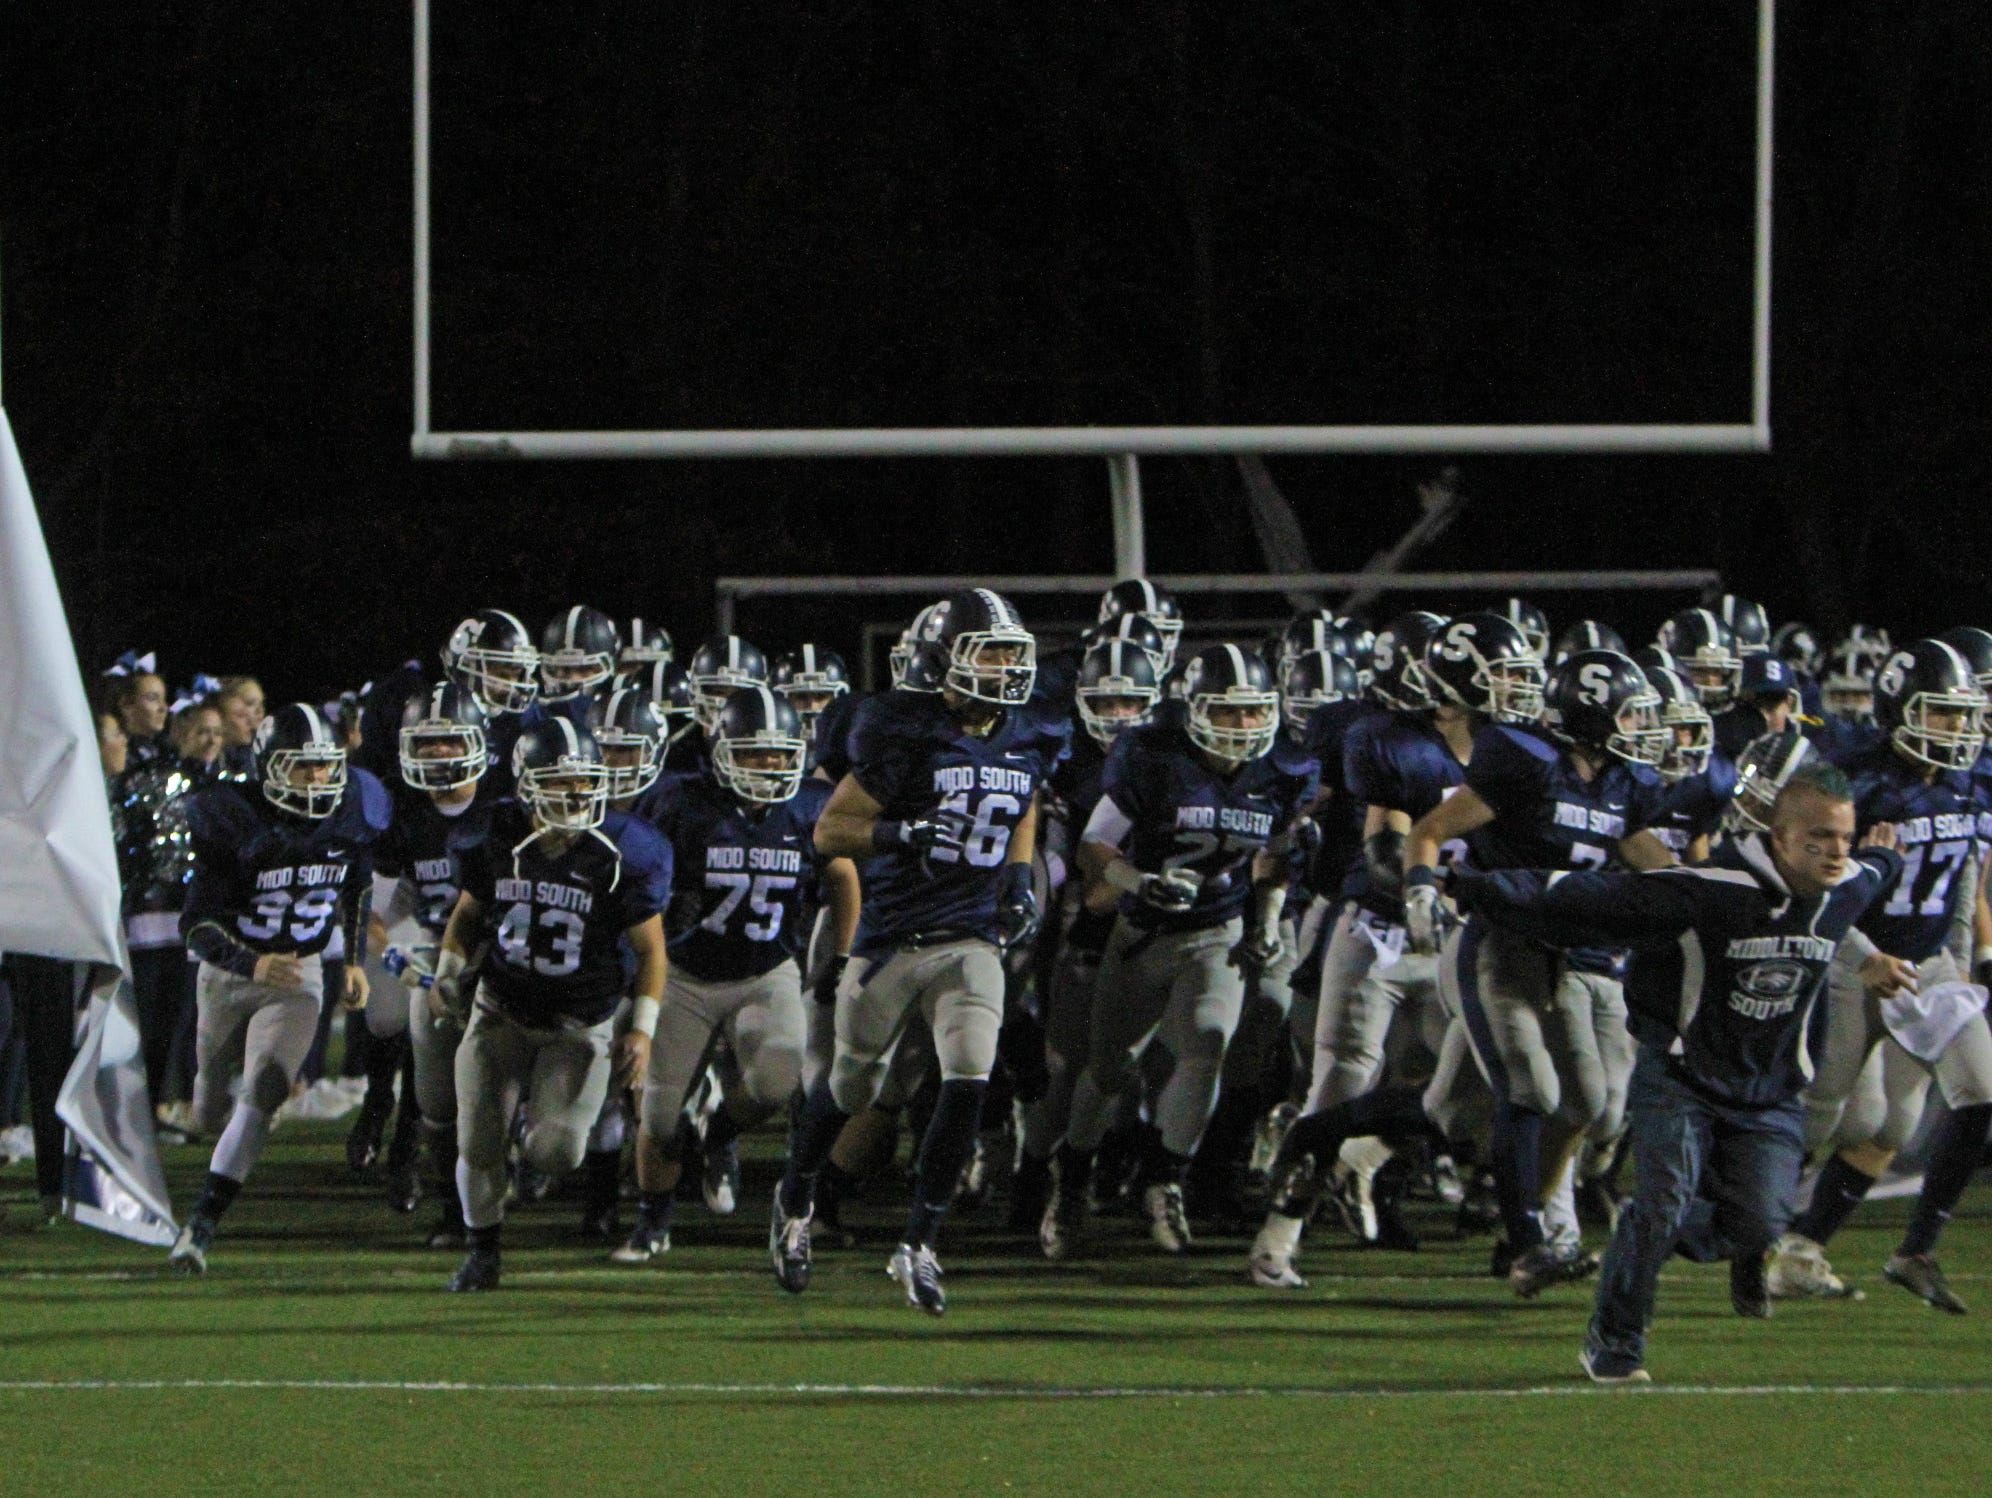 Middletown North vs Middletown South in NJSIAA North II Group IV semifinal football in Middletown, NJ on November 20, 2015